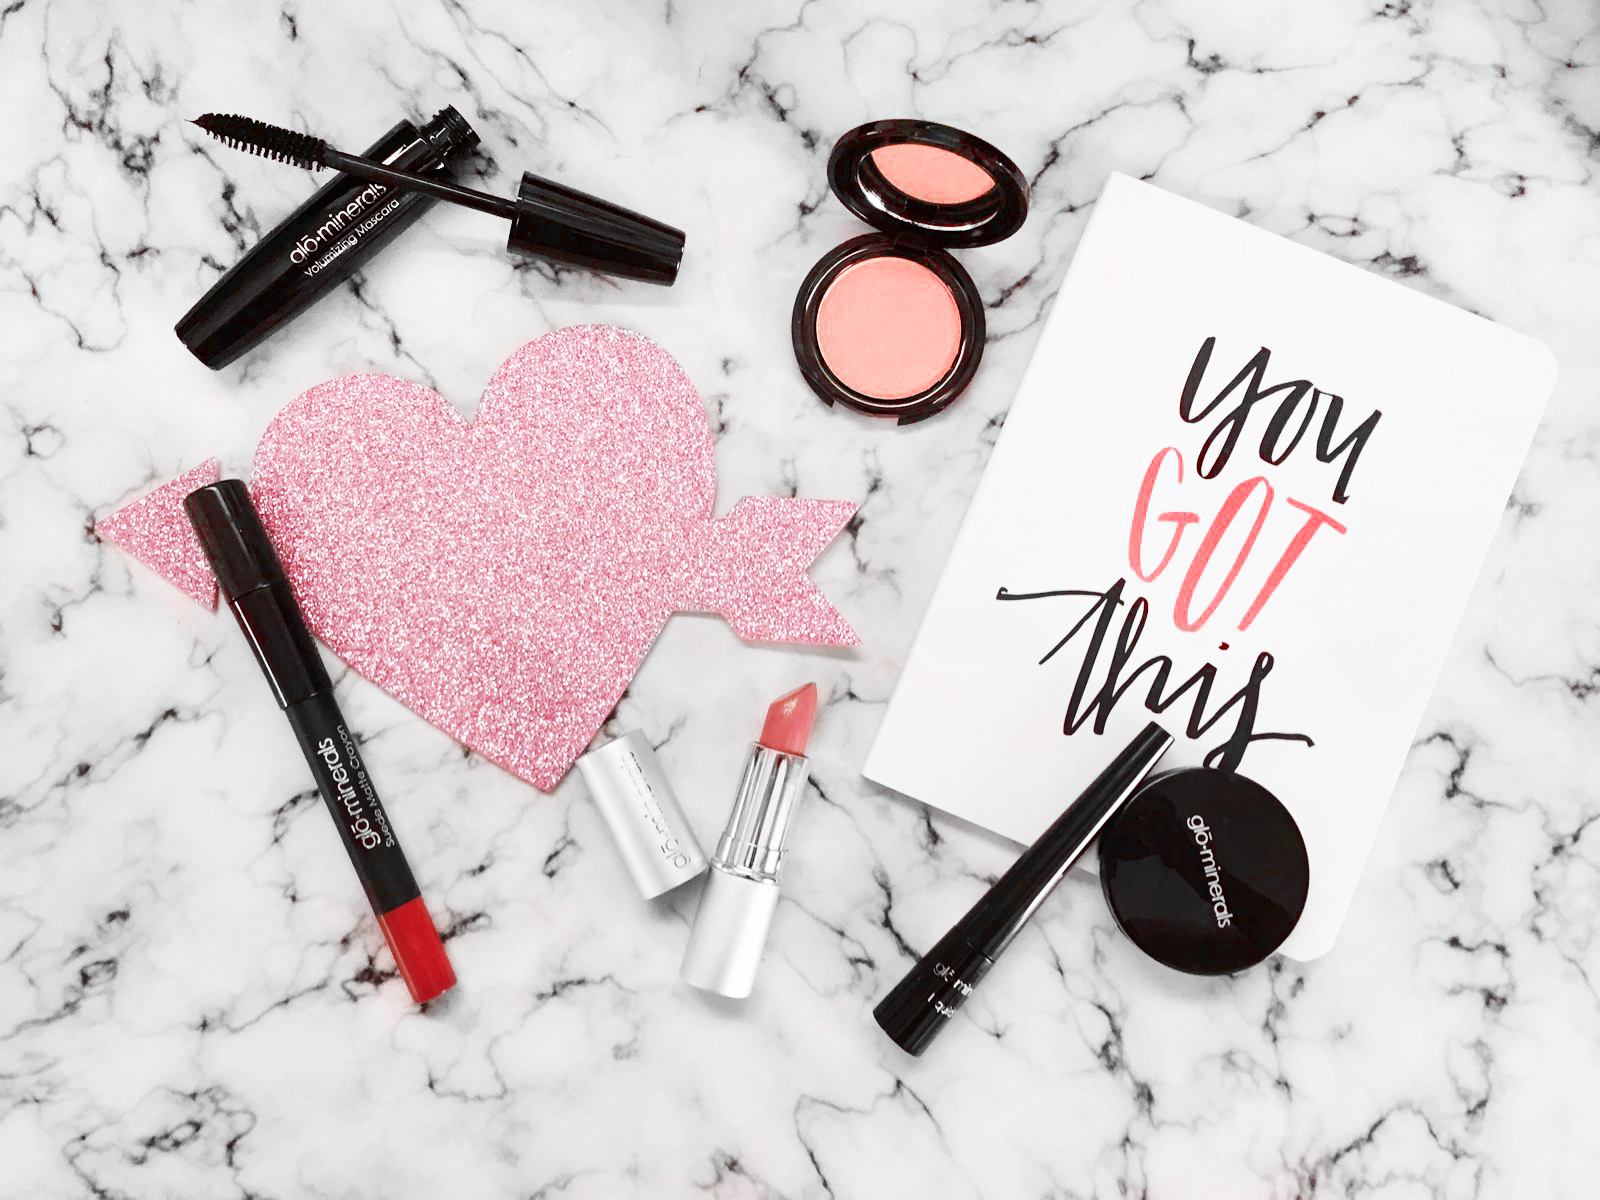 V-day Makeup Faves- with Glo Minerals